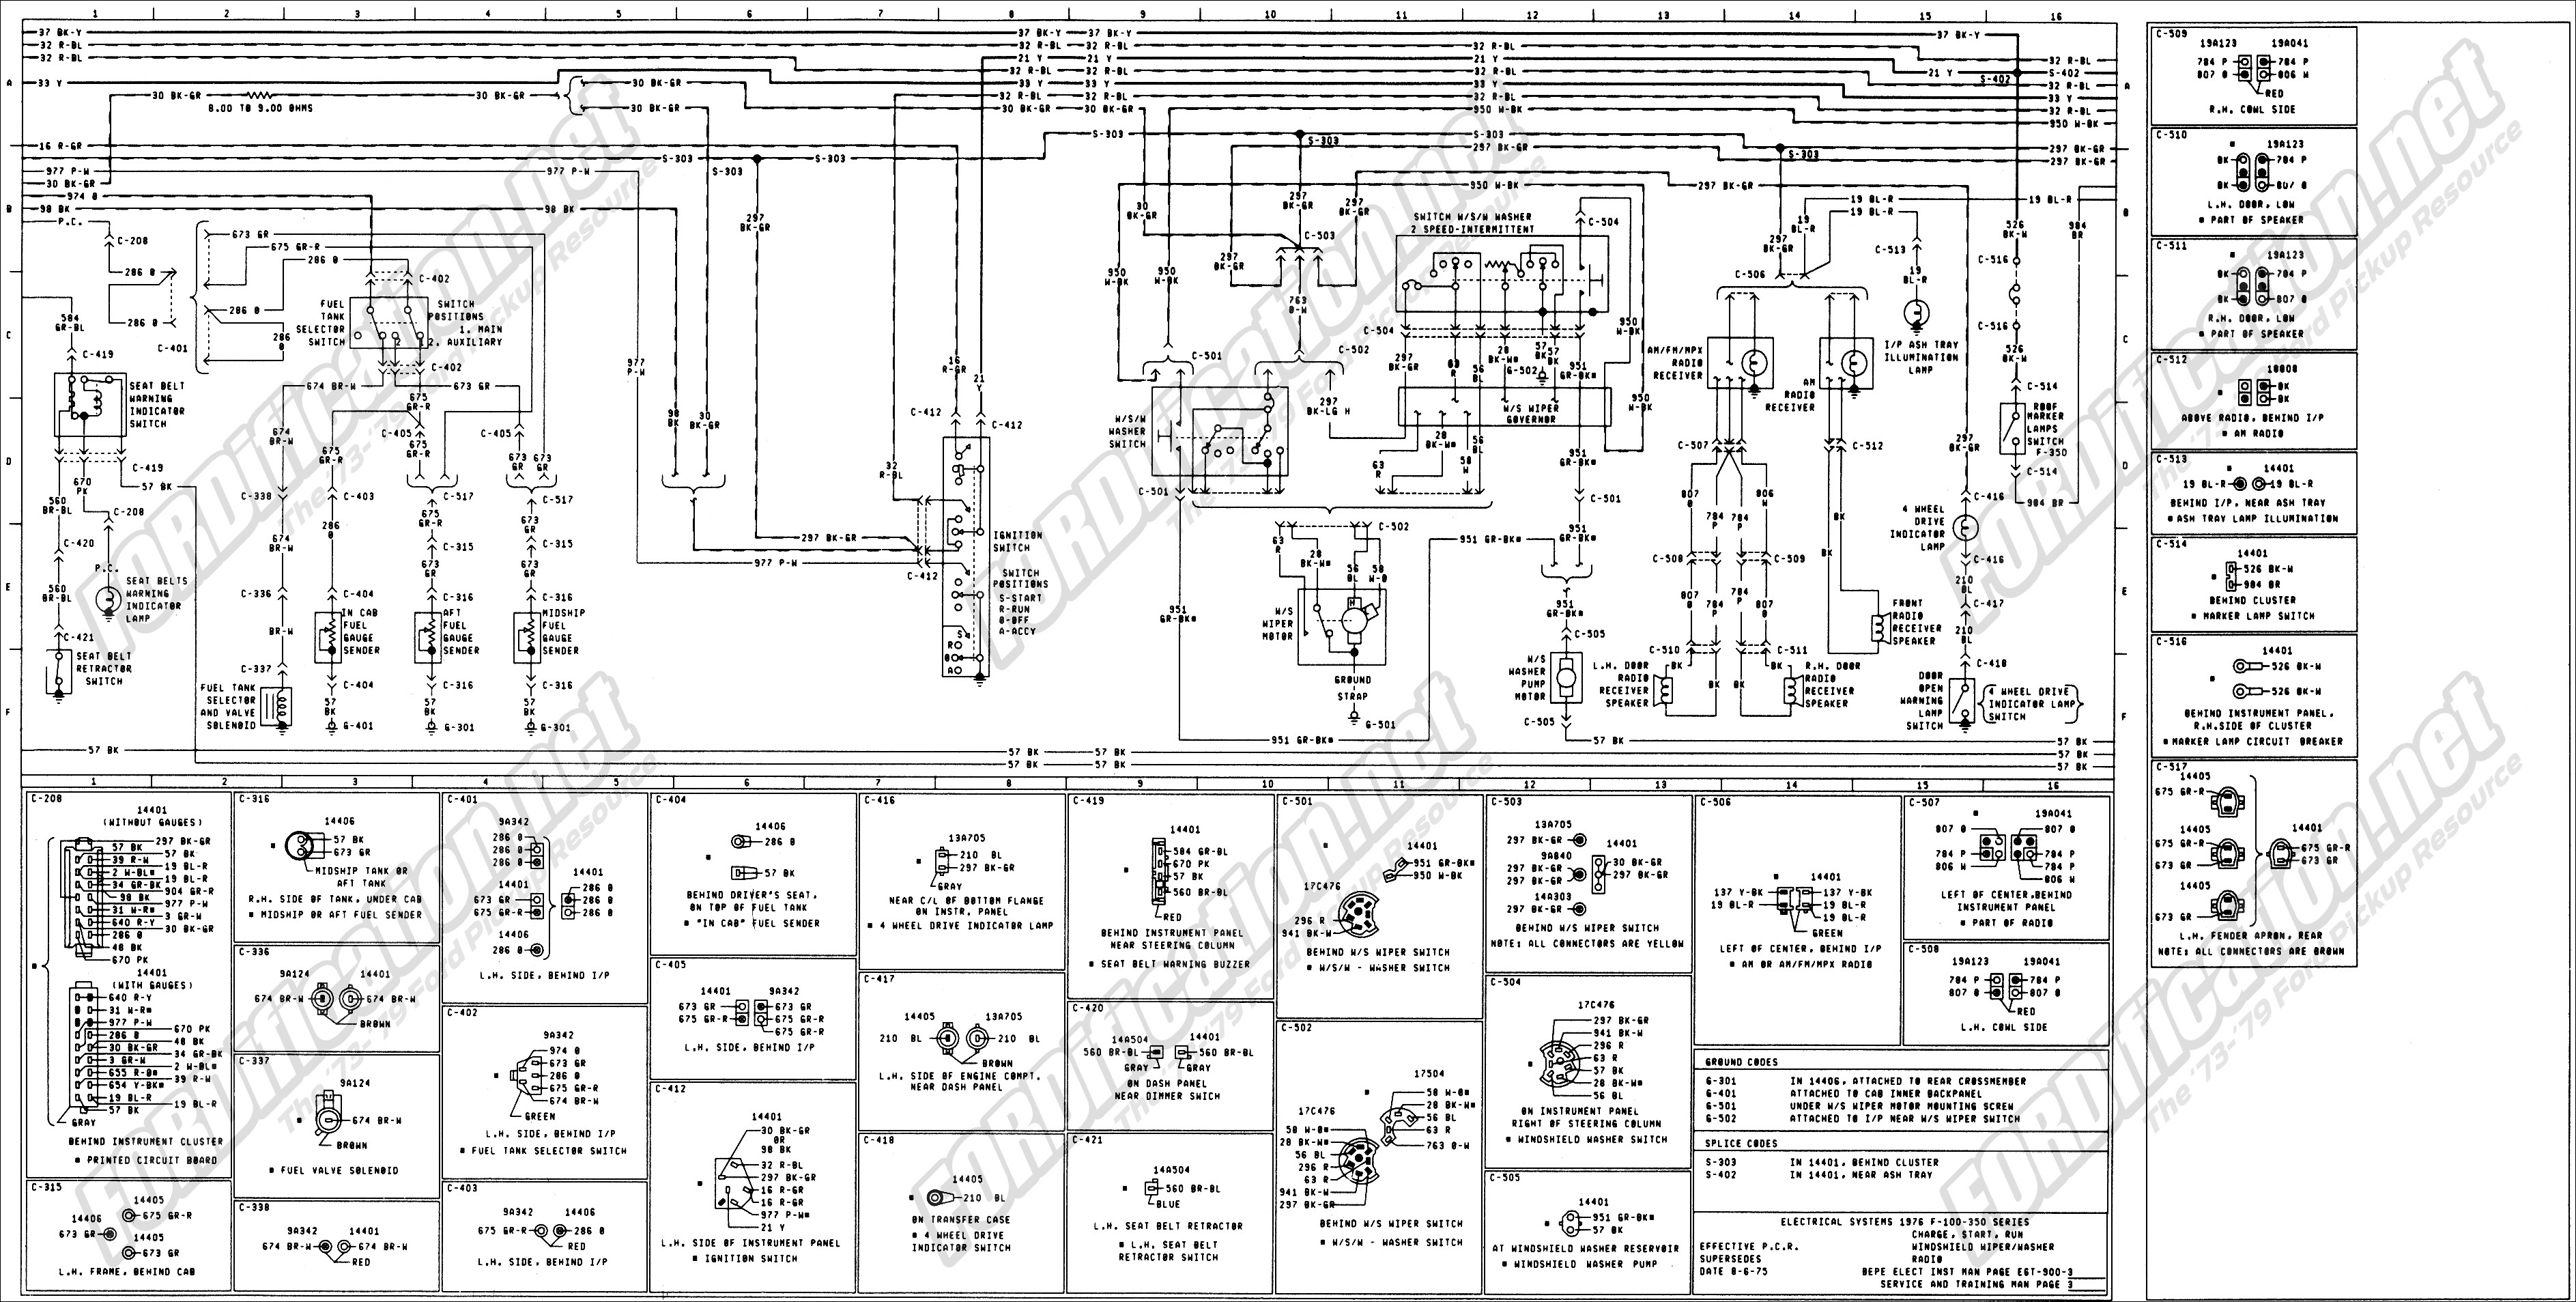 1979 Ford Fuse Box Diagram Ask Answer Wiring 87 Mustang Truck Library Rh Codingcommunity De F250